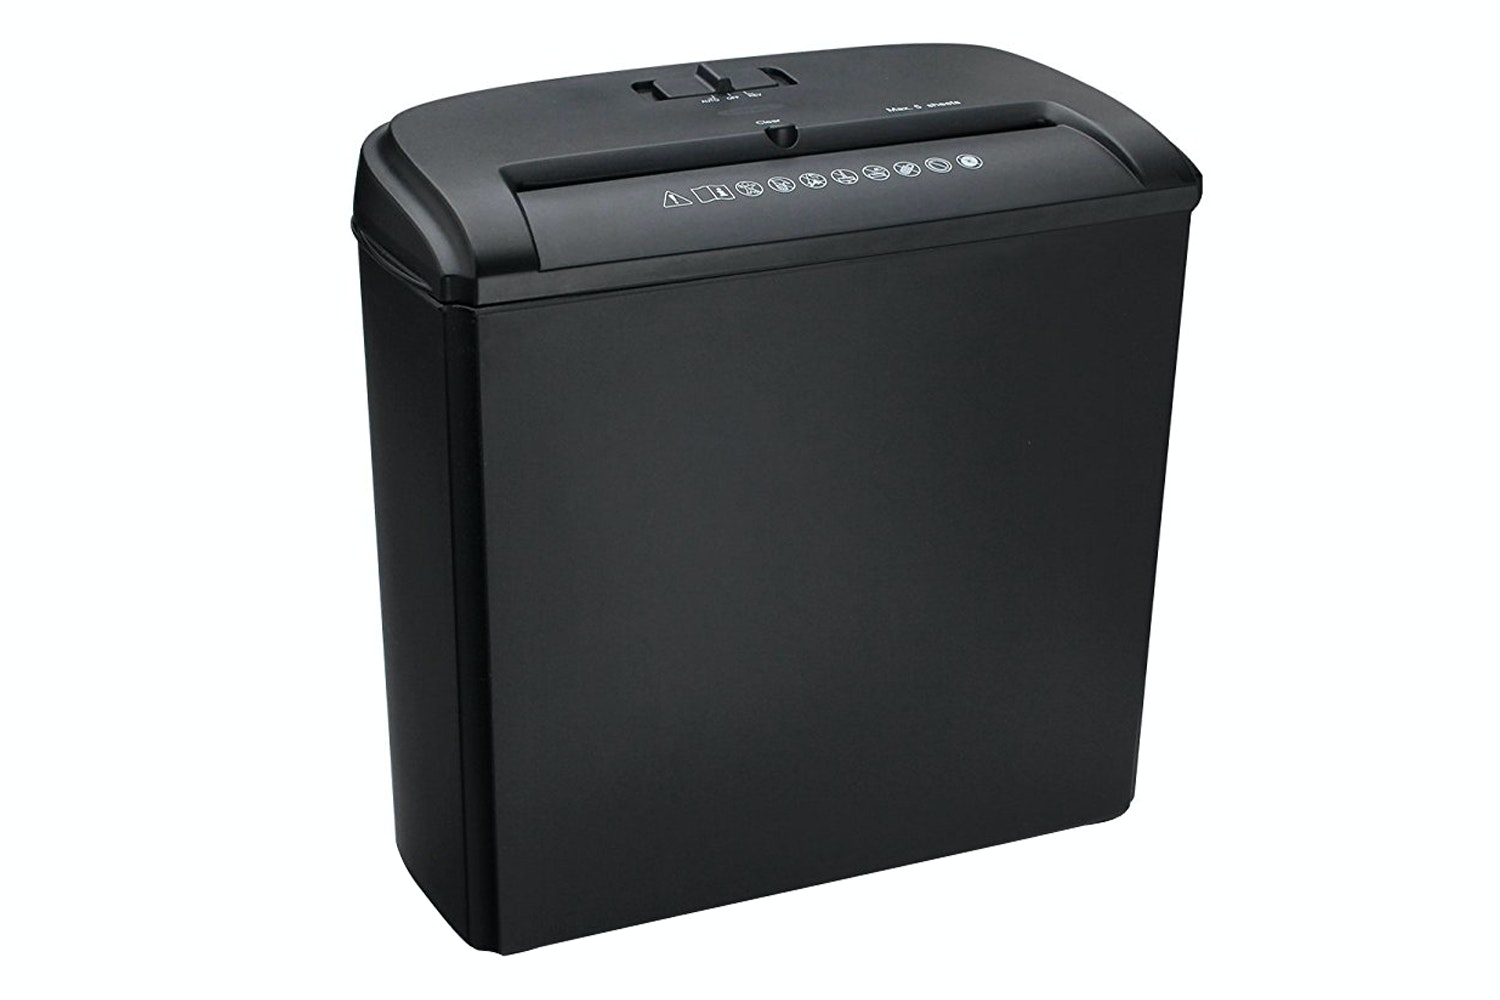 Ednet Shredder X5 5 Sheet | Black